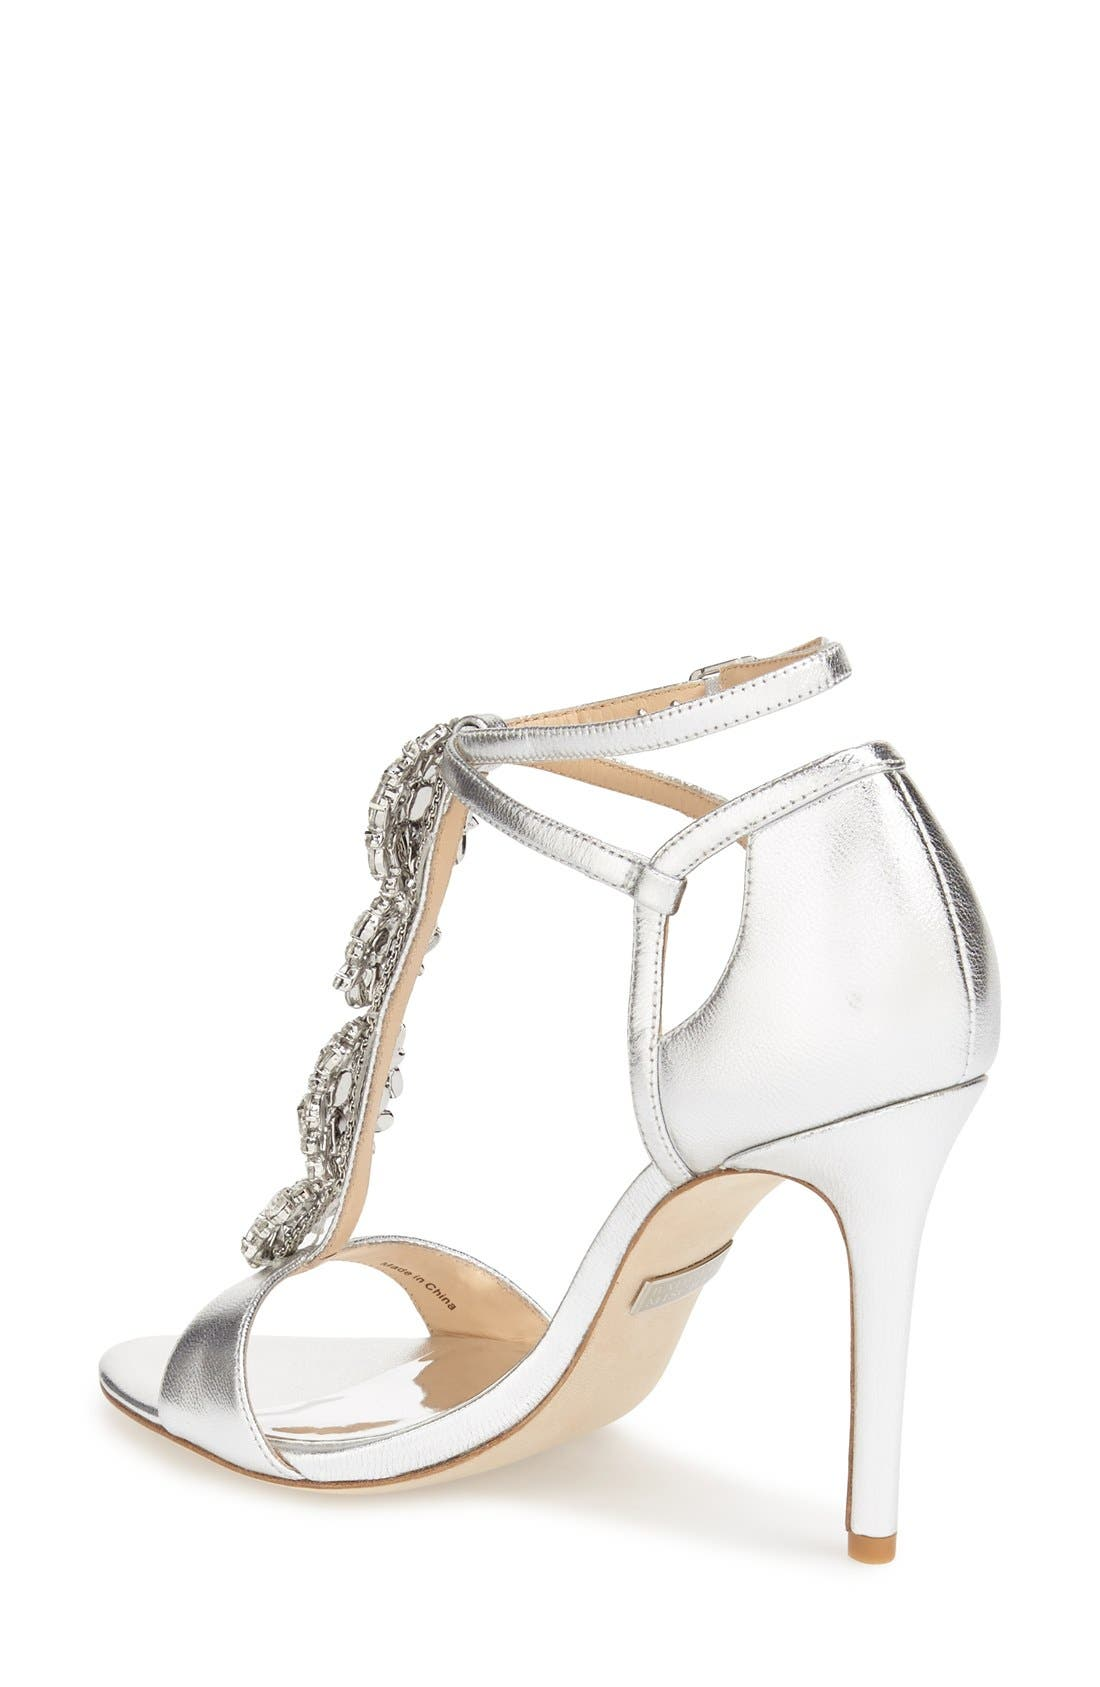 BADGLEY MISCHKA COLLECTION,                             Badgley Mischka 'Leigh' Embellished Evening Sandal,                             Alternate thumbnail 2, color,                             046